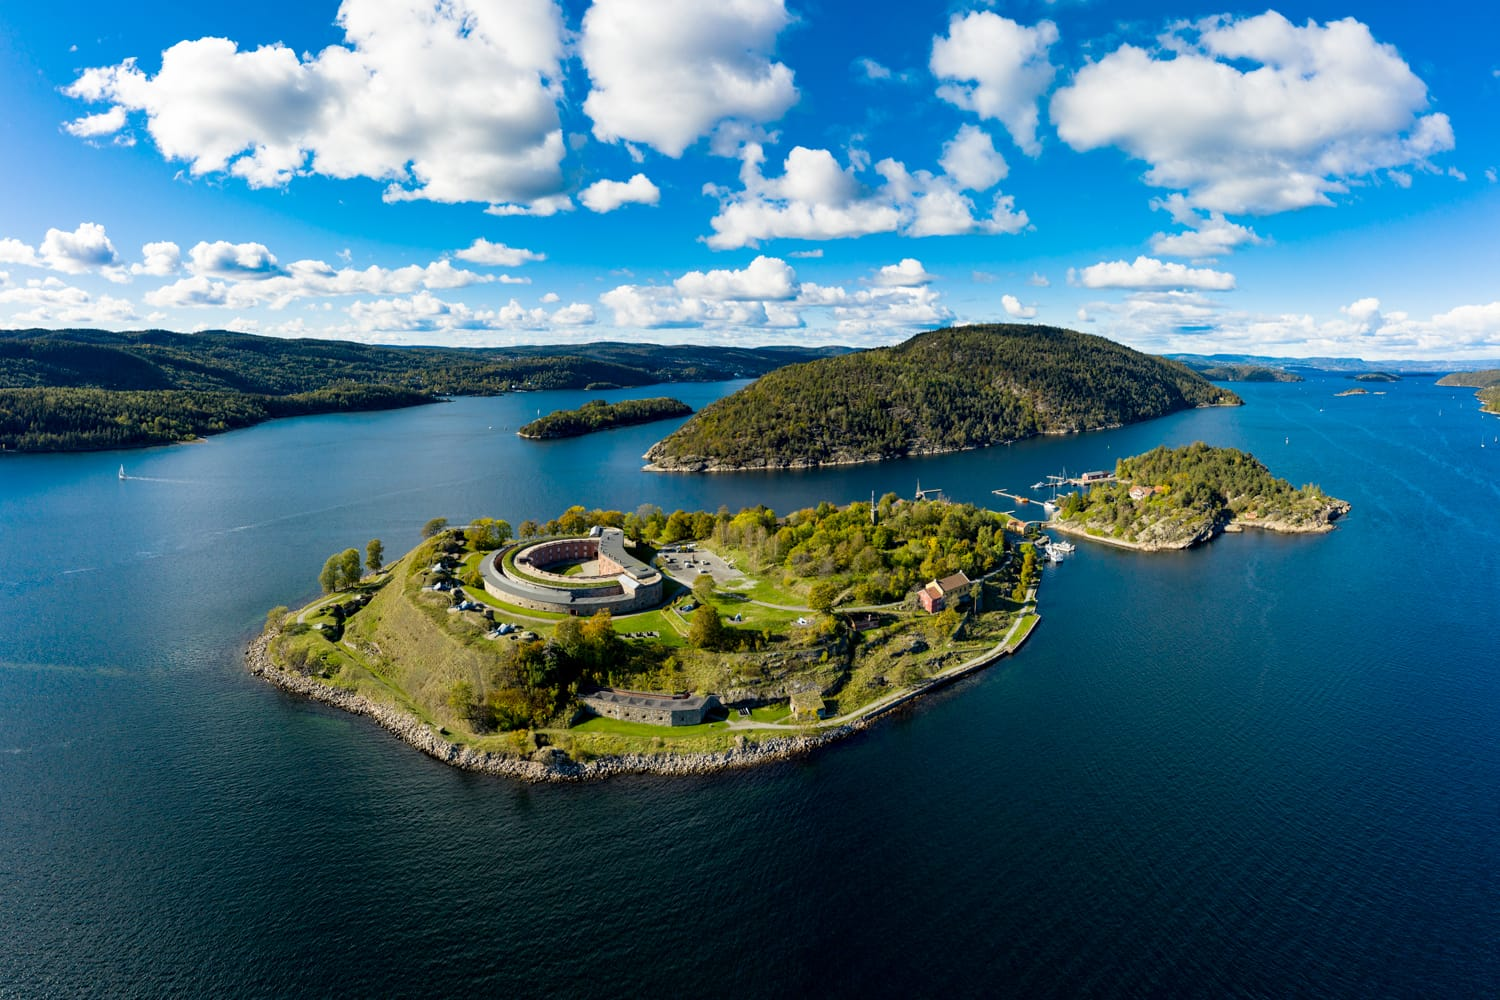 Aerial view of Oscarsborg, Norway